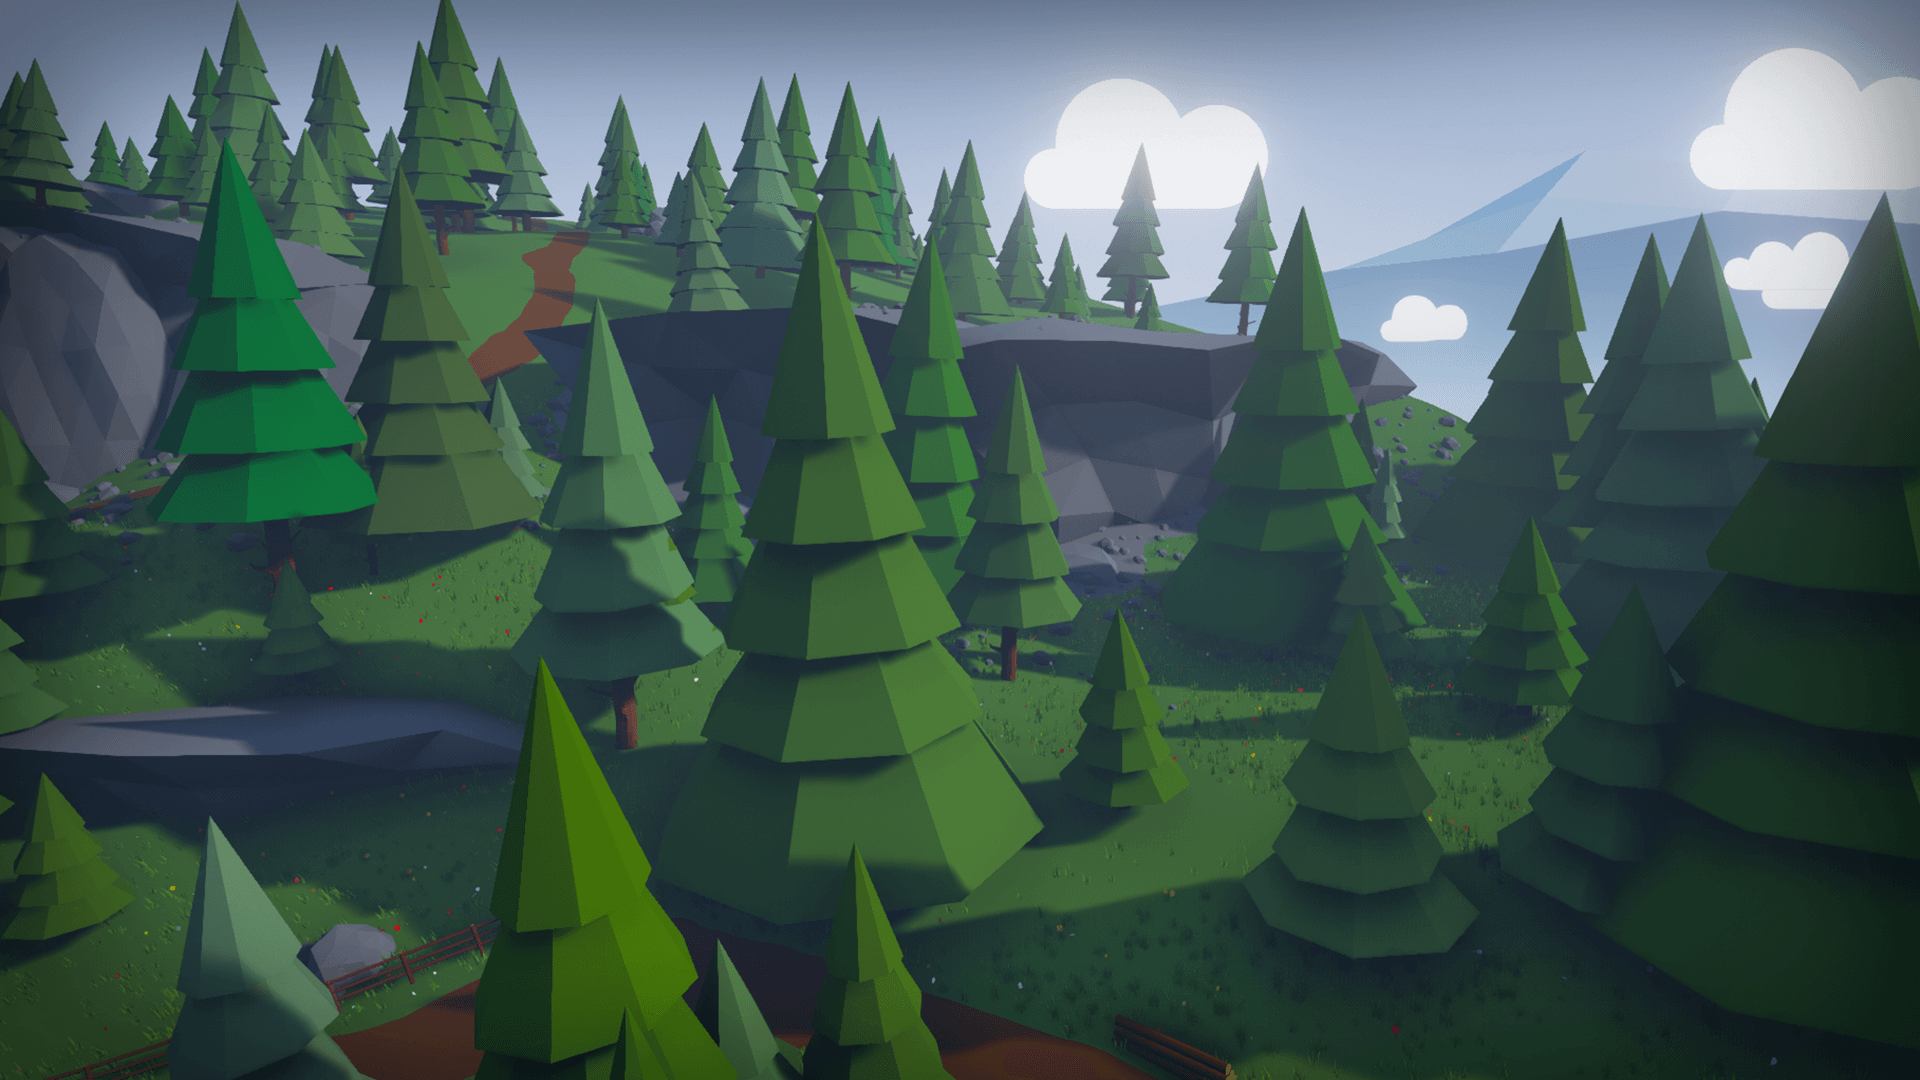 Stylized Low Poly Environment by MacKenzie Shirk in Environments